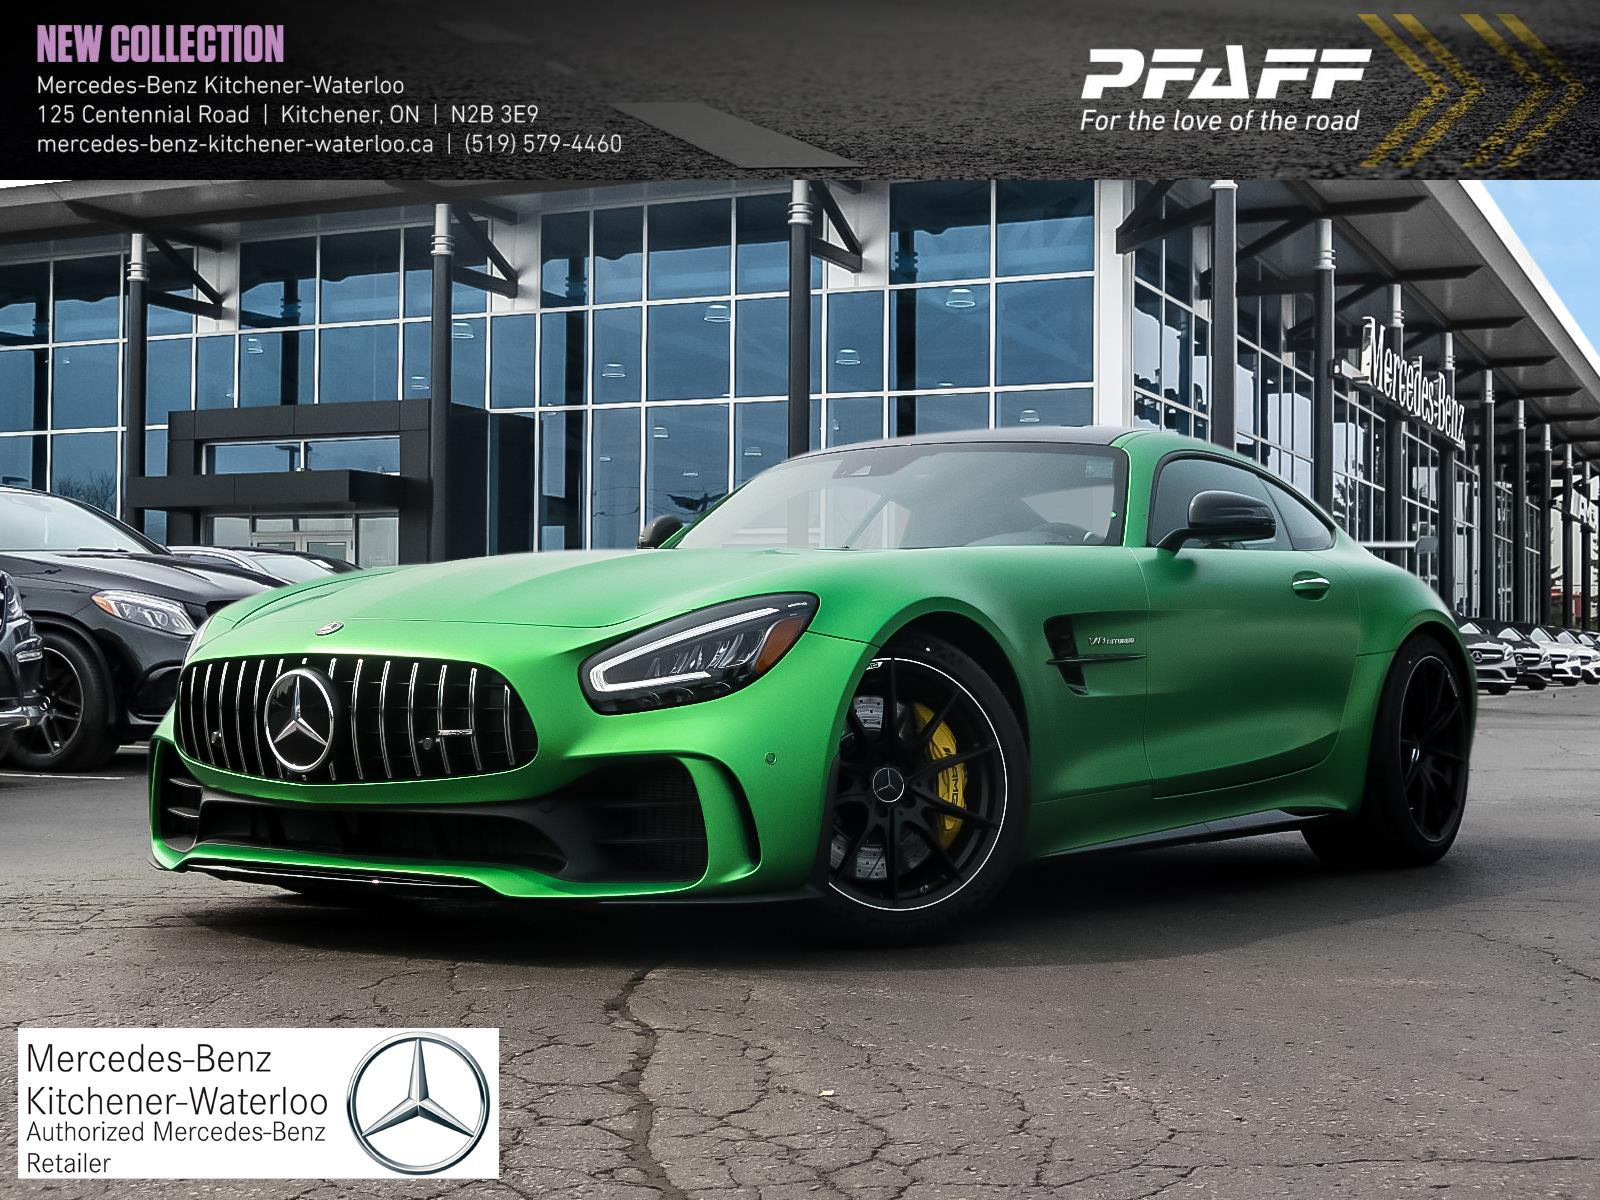 New 2020 Mercedes-Benz AMG GT R Coupe 2-Door Coupe in ...